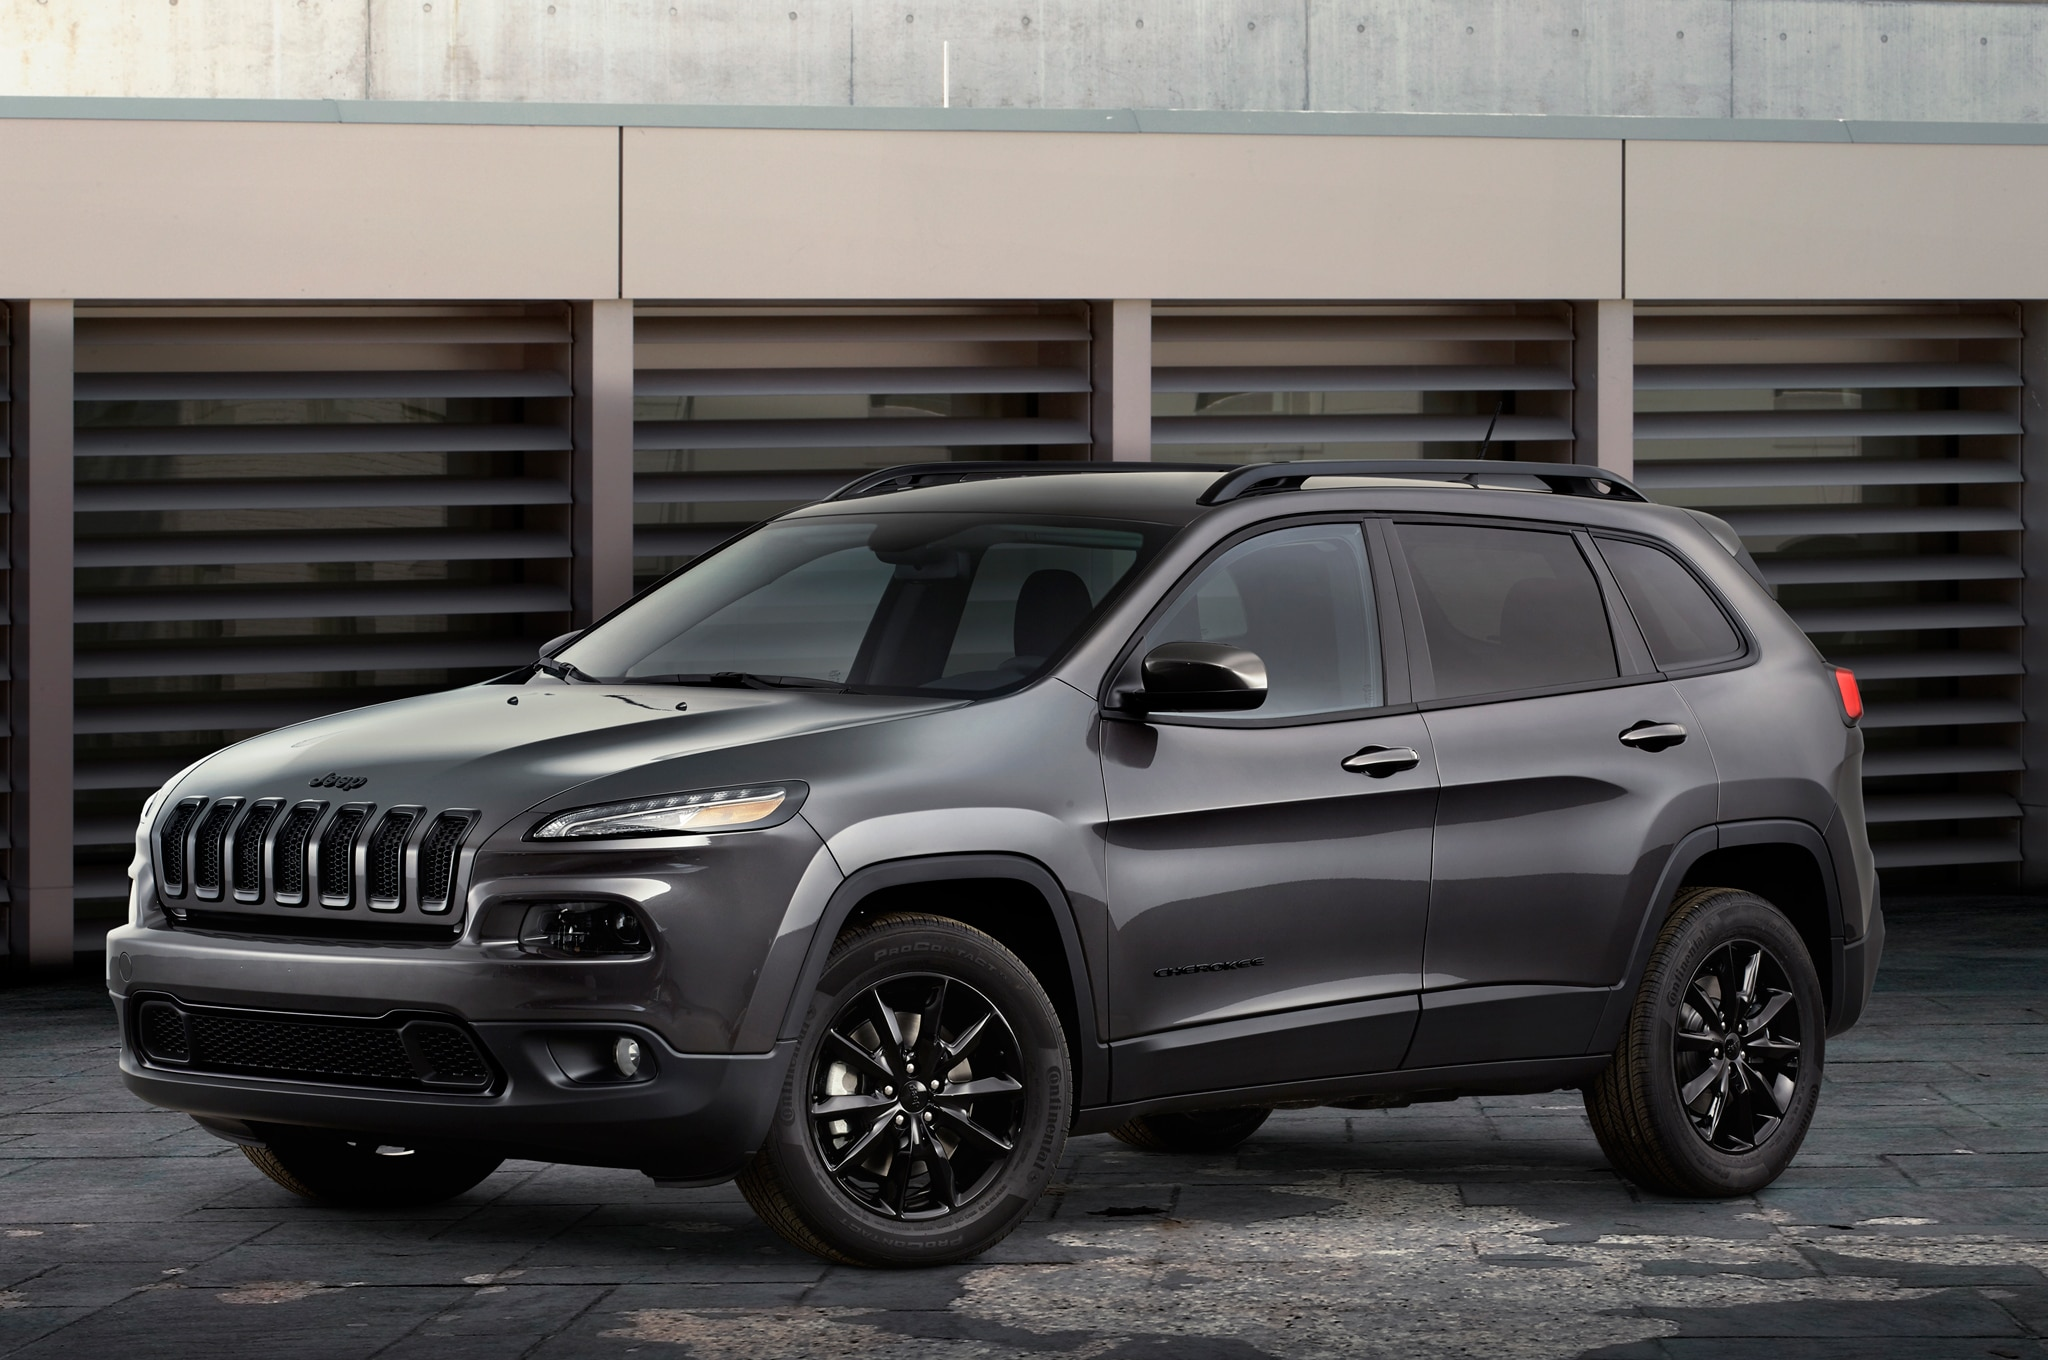 2014 Jeep Cherokee Altitude Front Three Quarters1